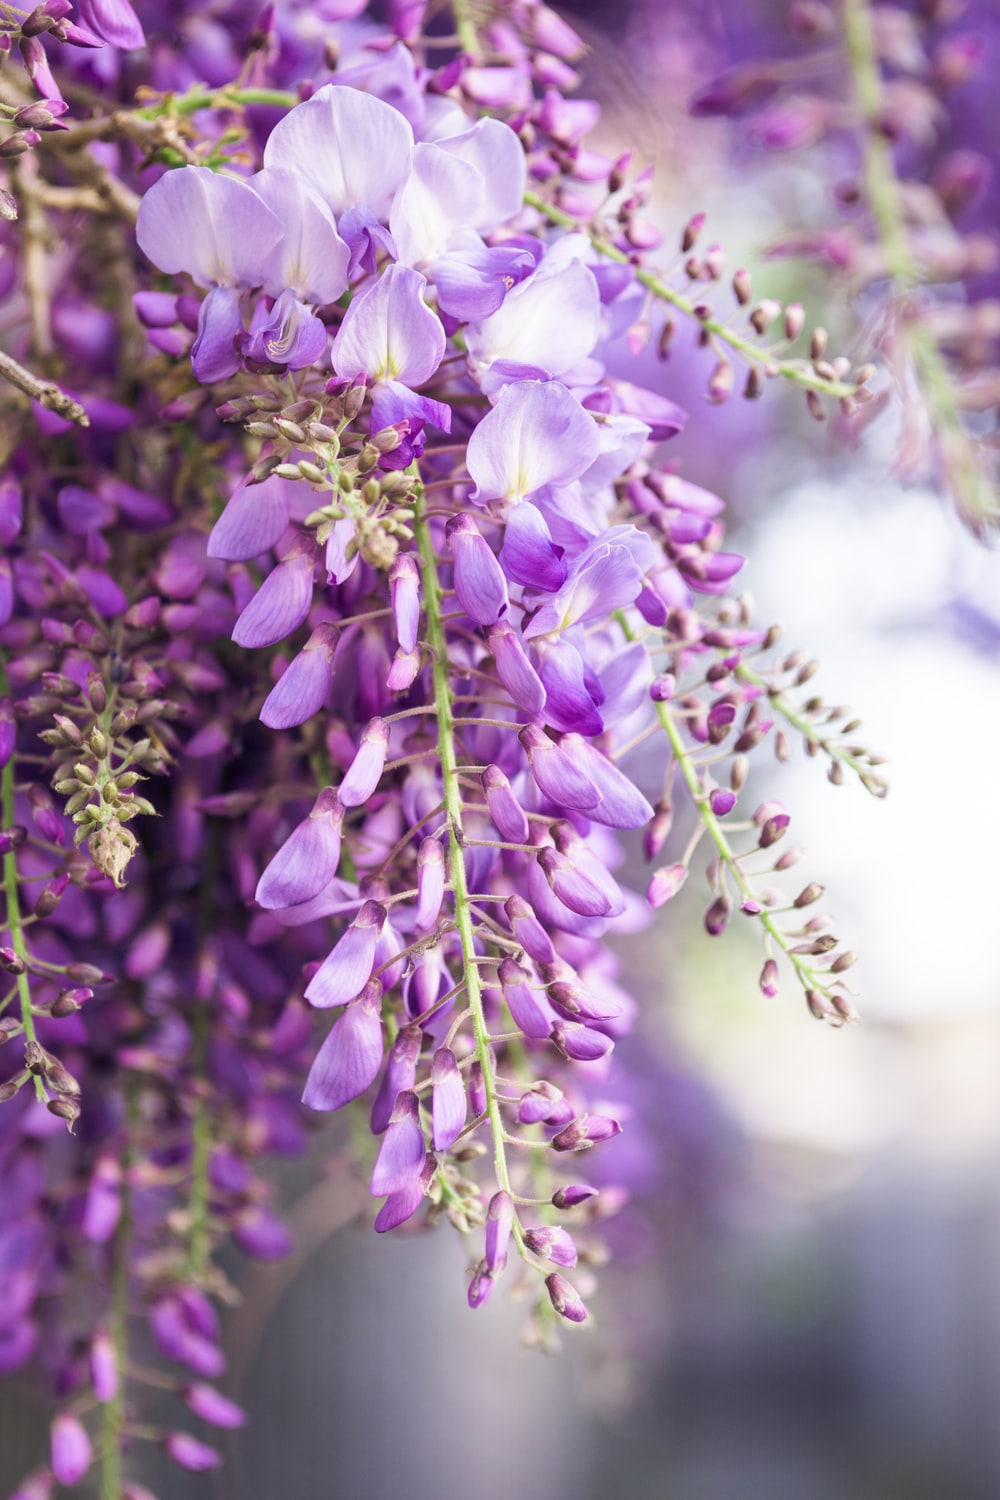 selective focus photography of wisteria flowers during daytime